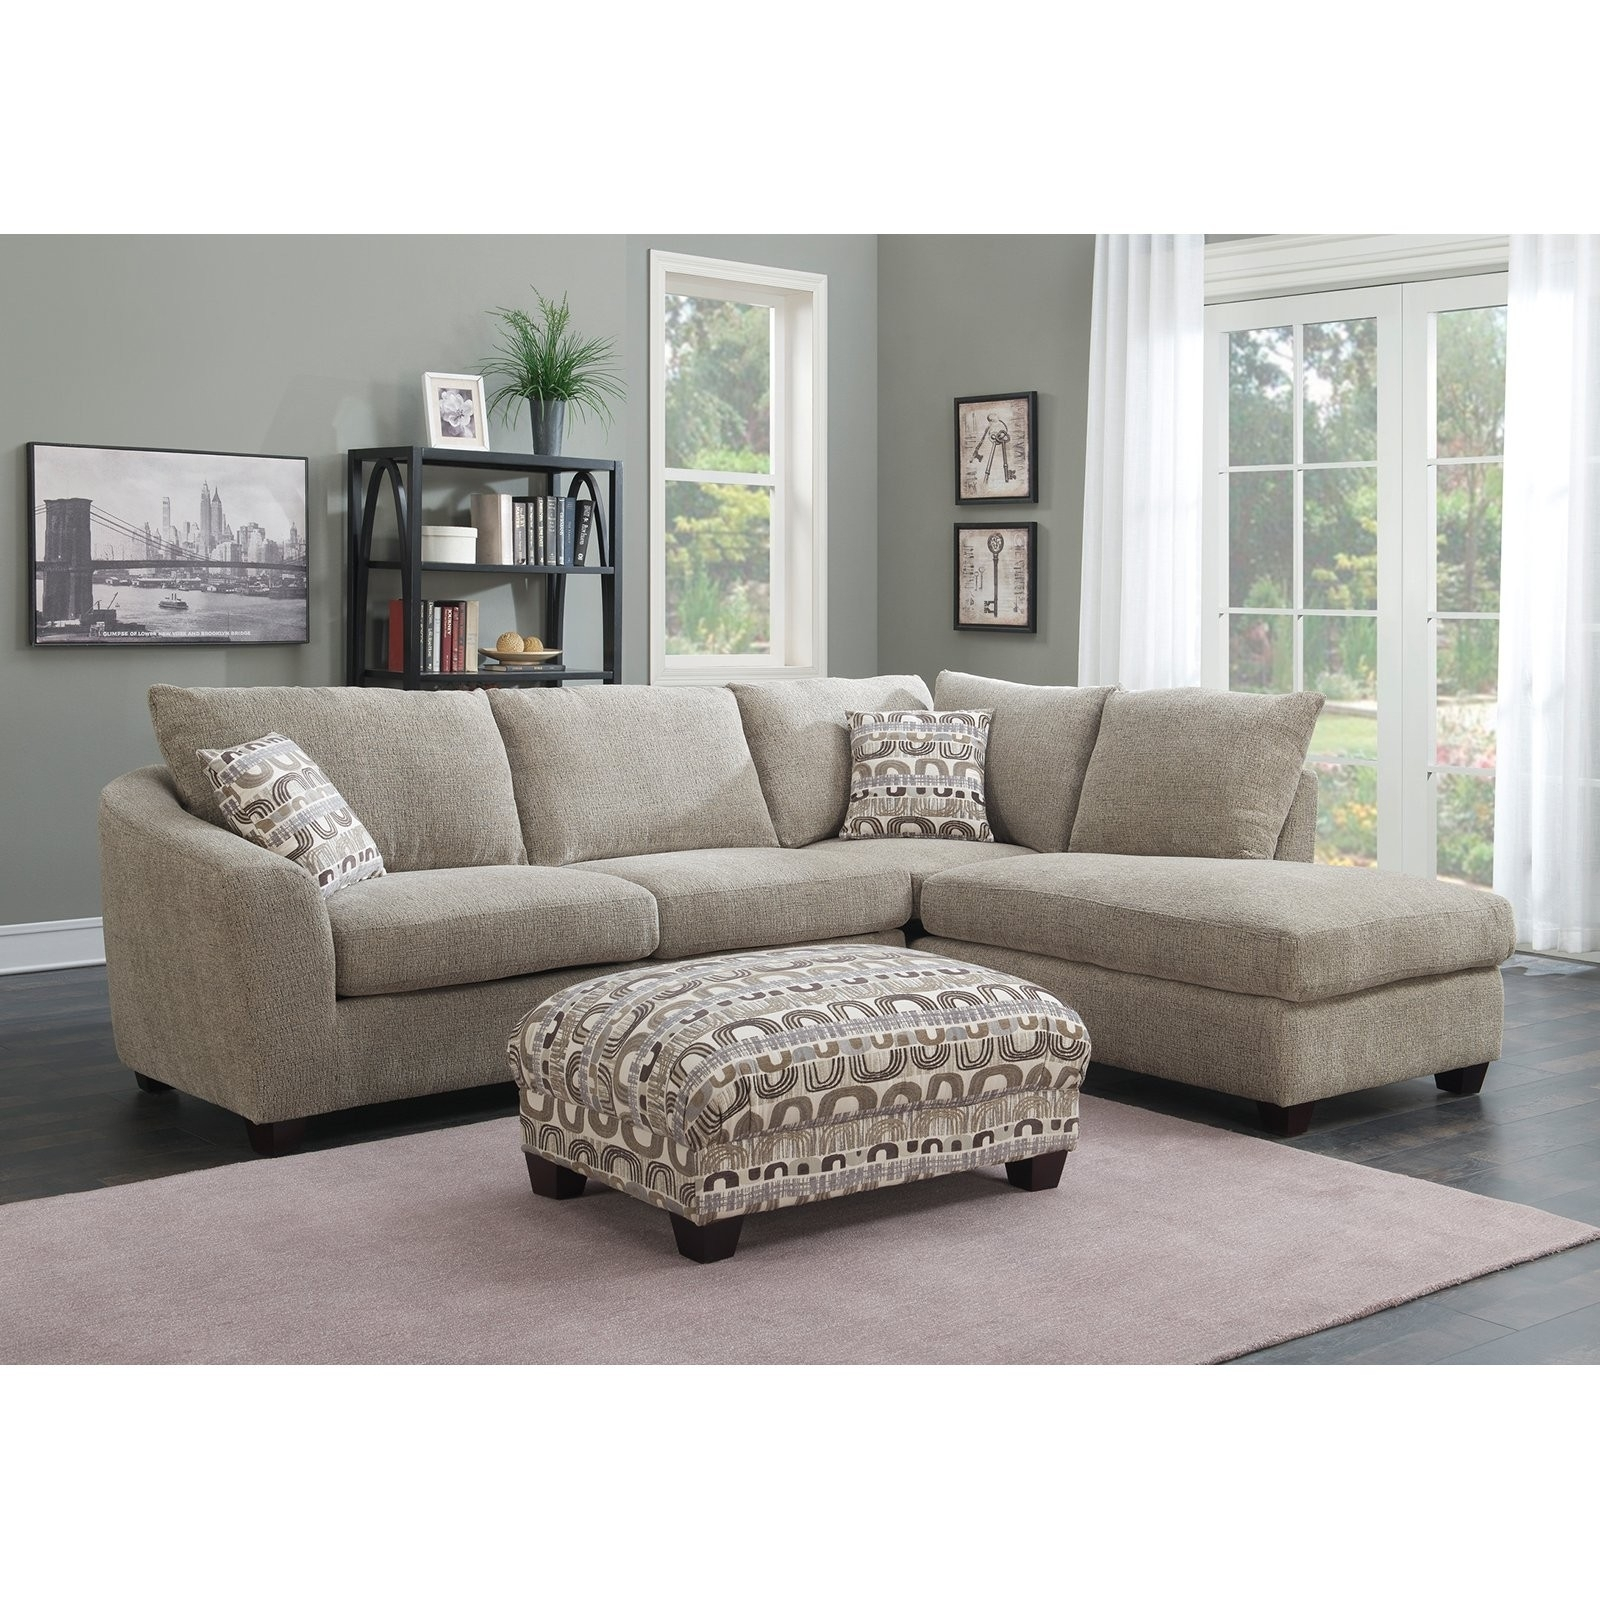 2 Piece Sectional With Chaise Urban Small West Elm C in Avery 2 Piece Sectionals With Raf Armless Chaise (Image 1 of 30)